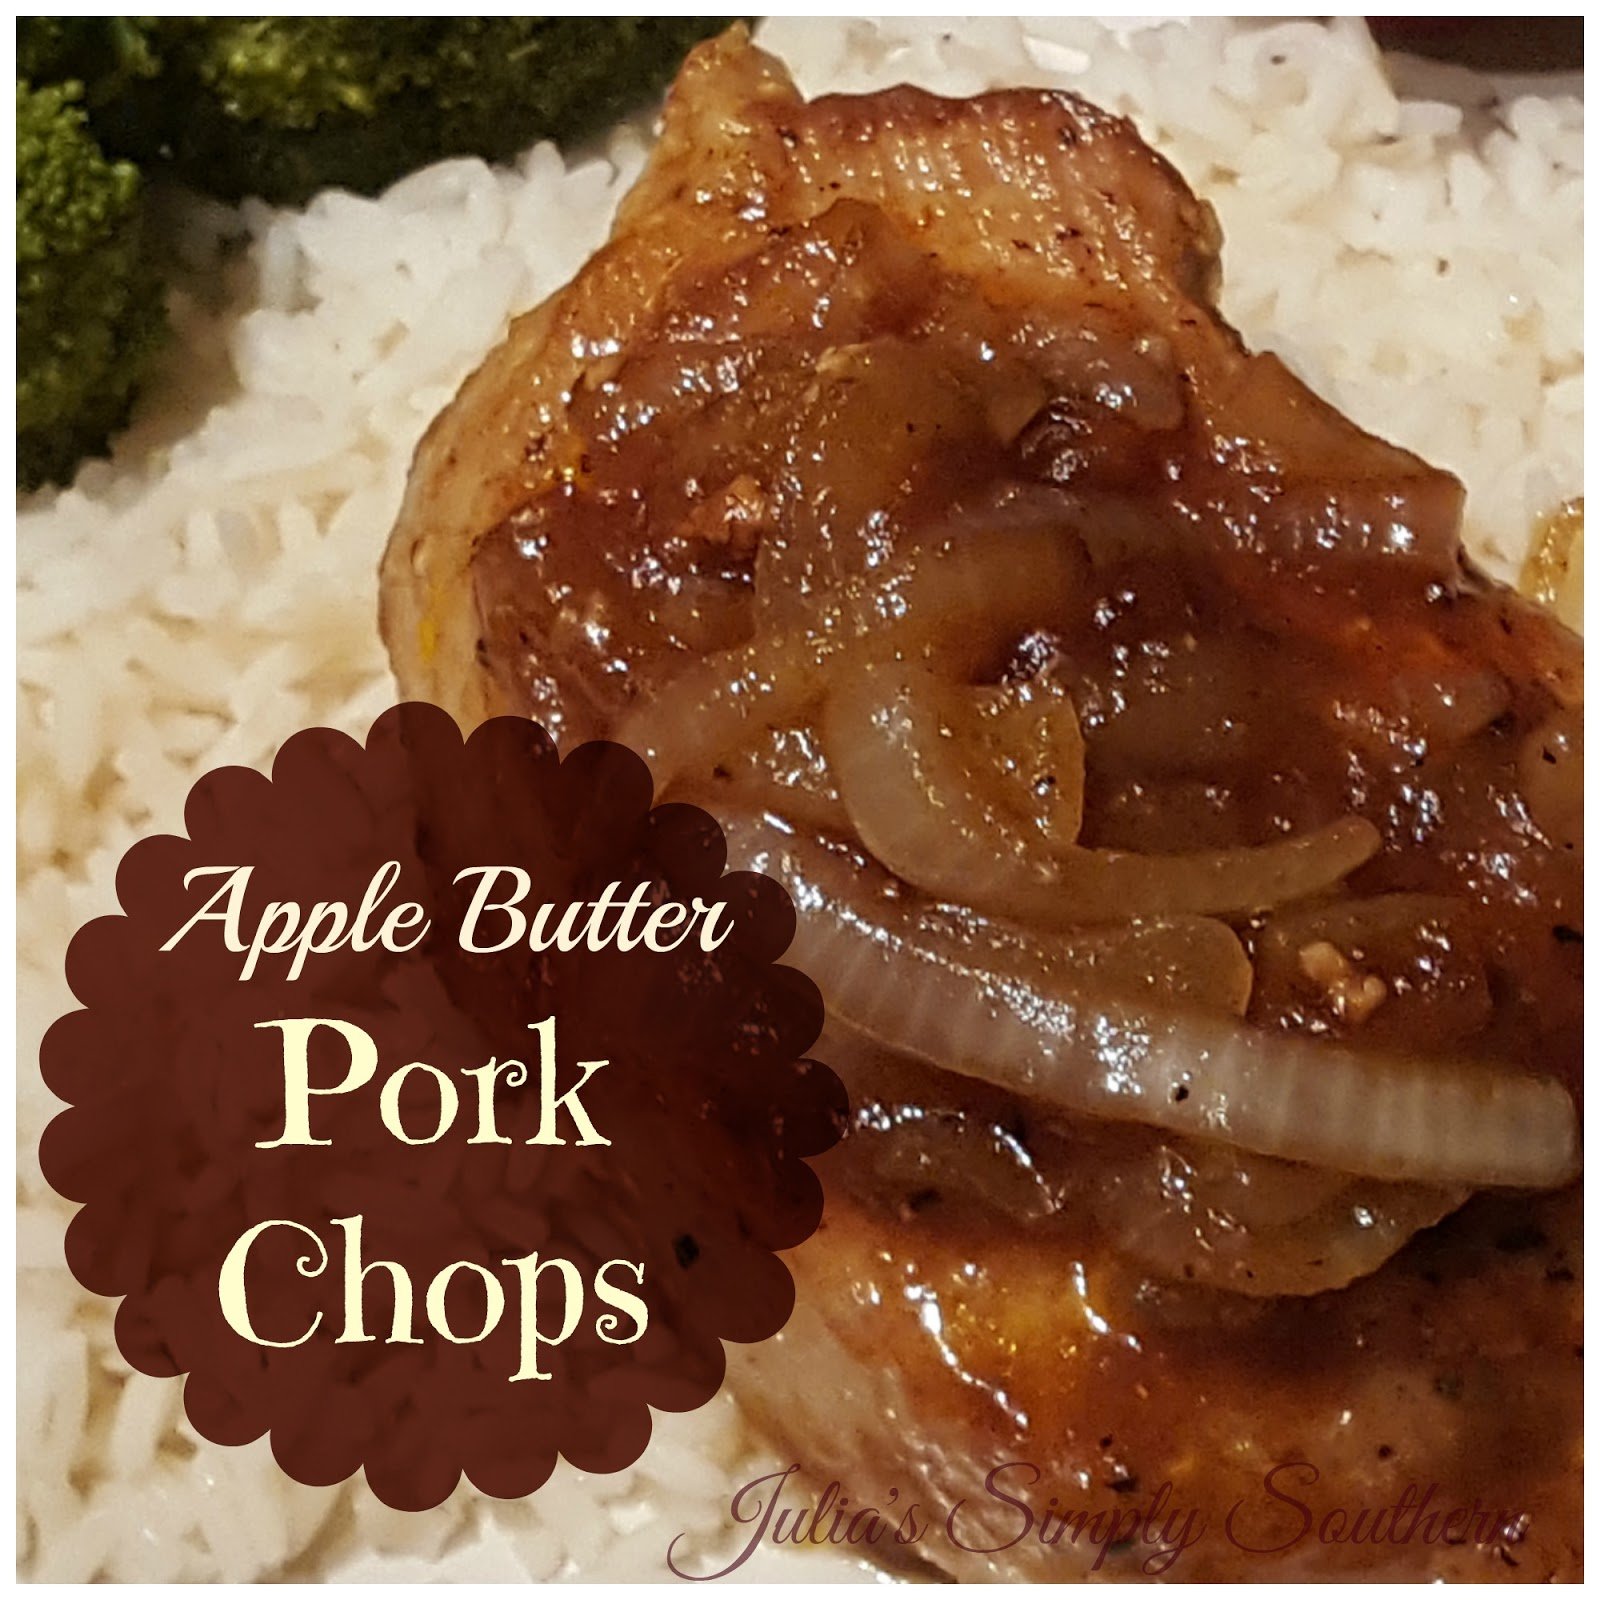 You'll find that apple butter is a perfect compliment to pork chops ...